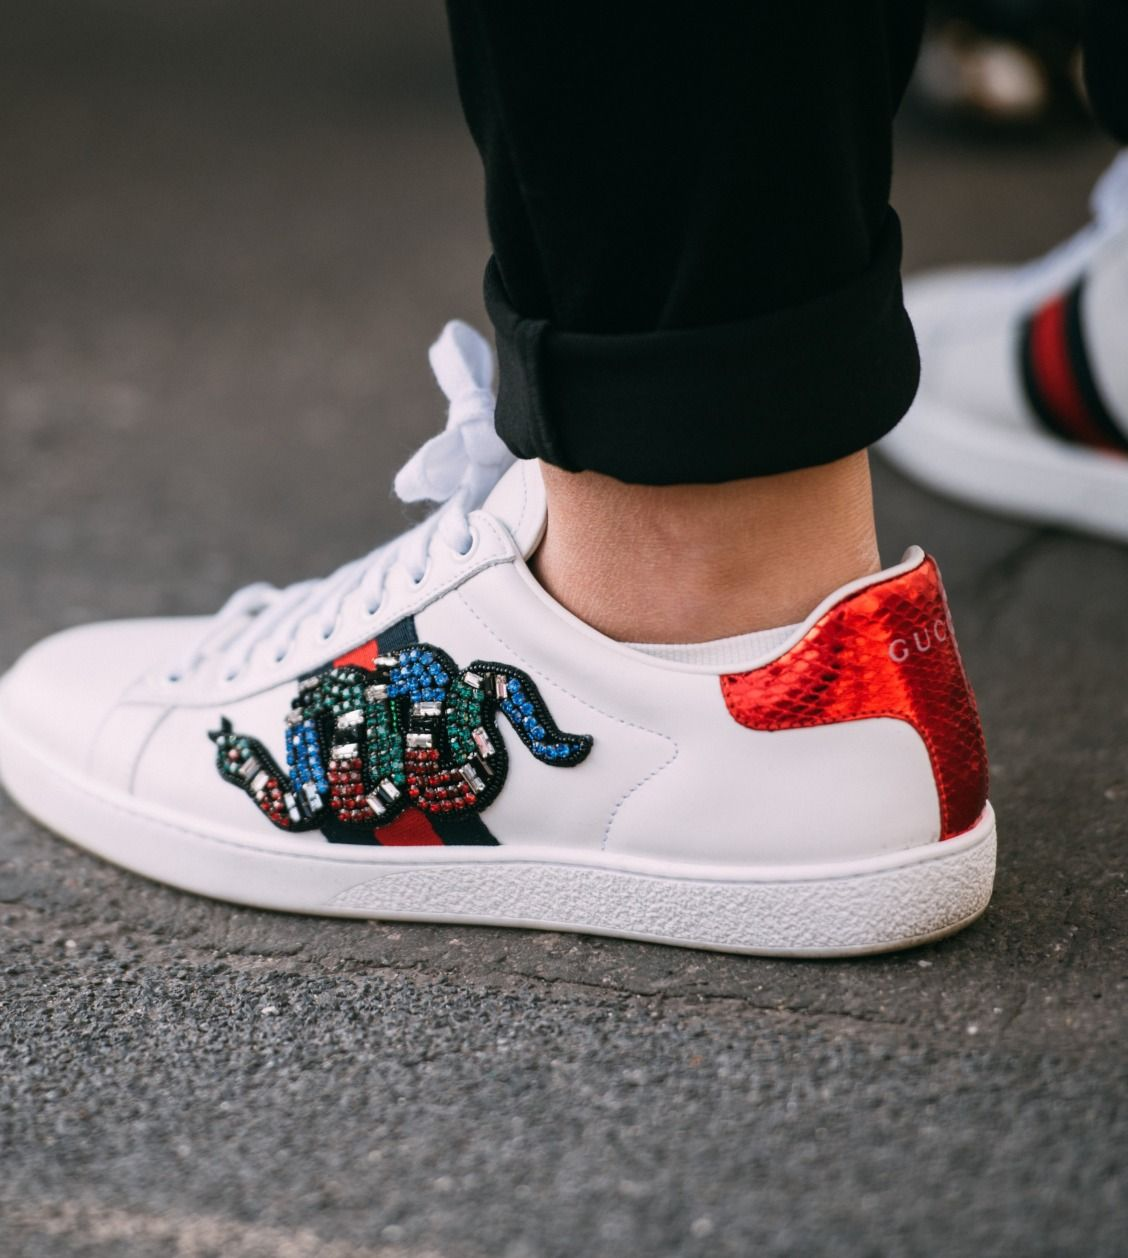 df9dcb7fe79 Look no further for your wardrobe ace this season. Discover The One pair of Gucci  Ace sneakers for you on Farfetch now.